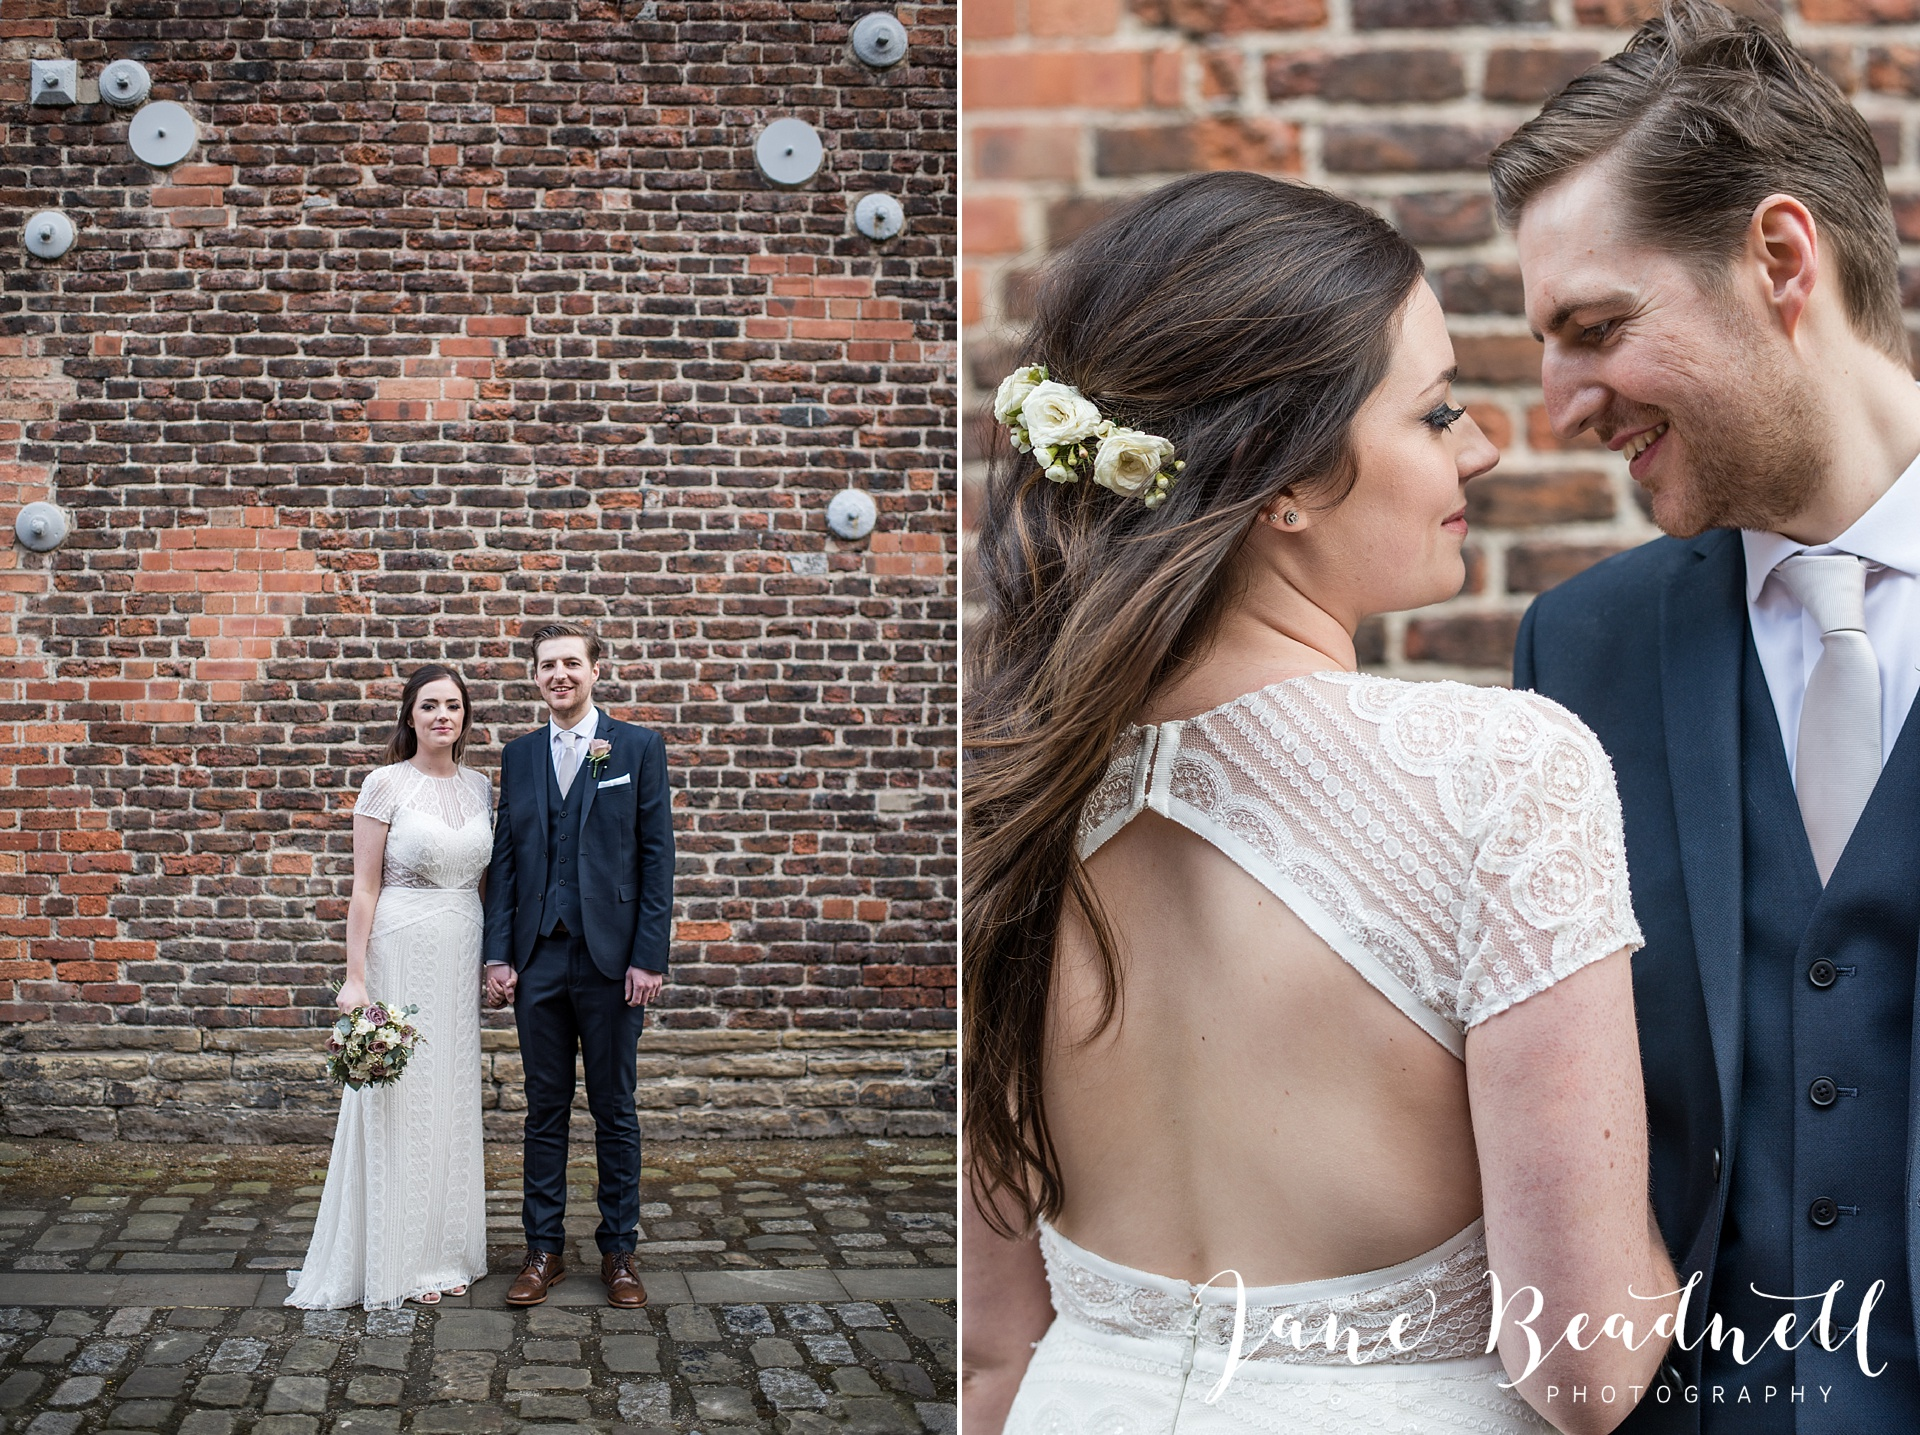 Wedding photography Cross Keys Leeds Wedding Jane Beadnell Photography_0097